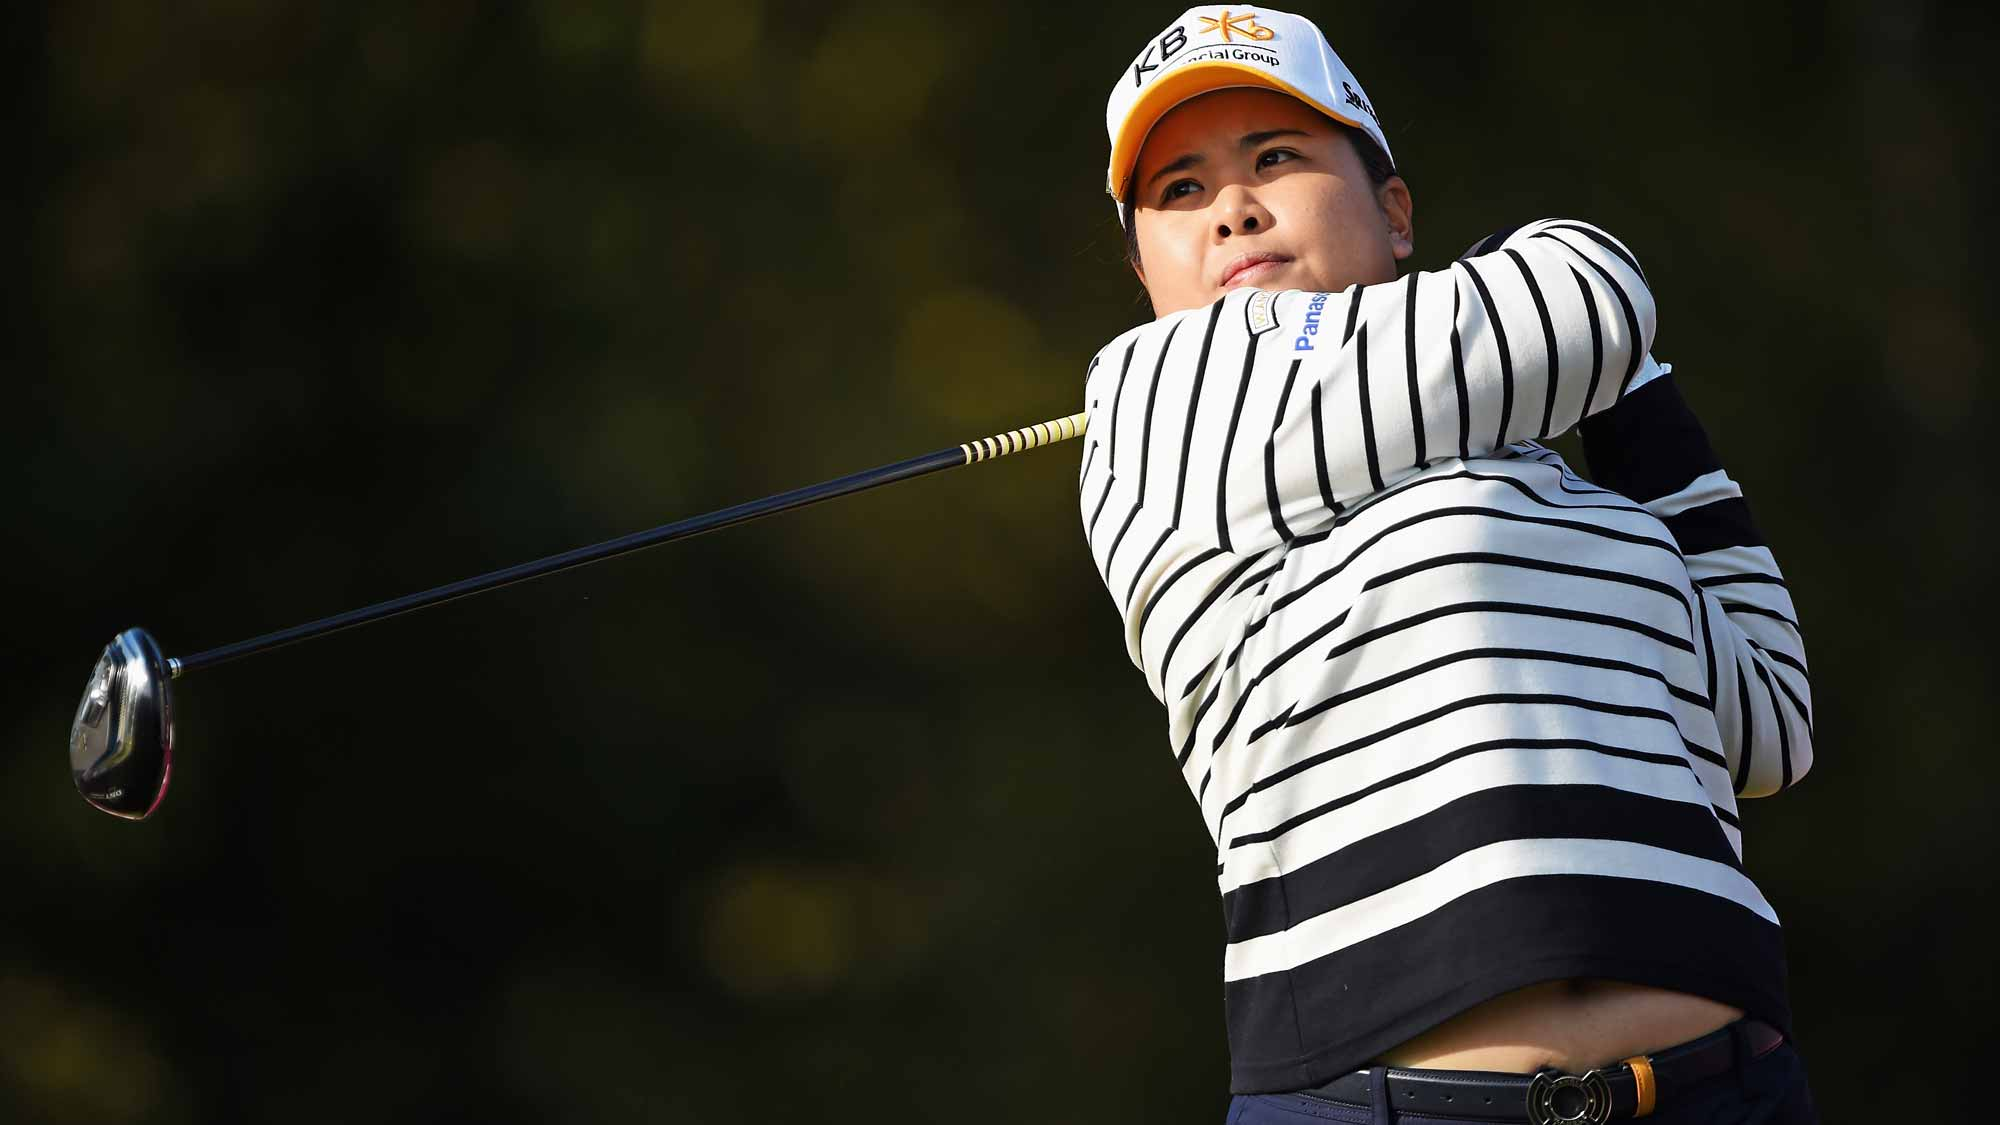 Inbee Park during the first round of the Evian Championship